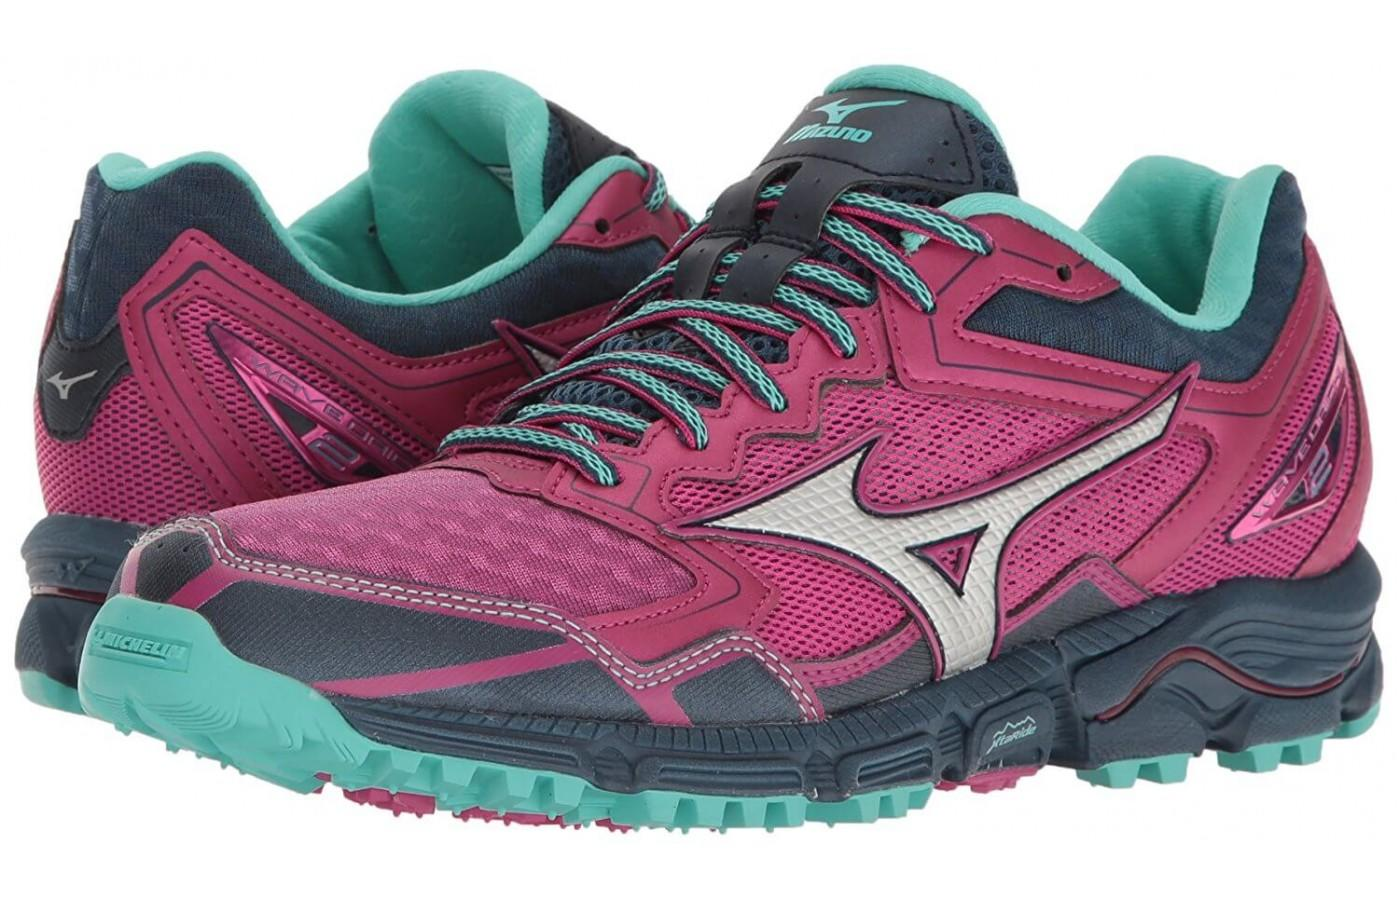 ... Pair of Mizuno Wave Daichi 2 women's shoes